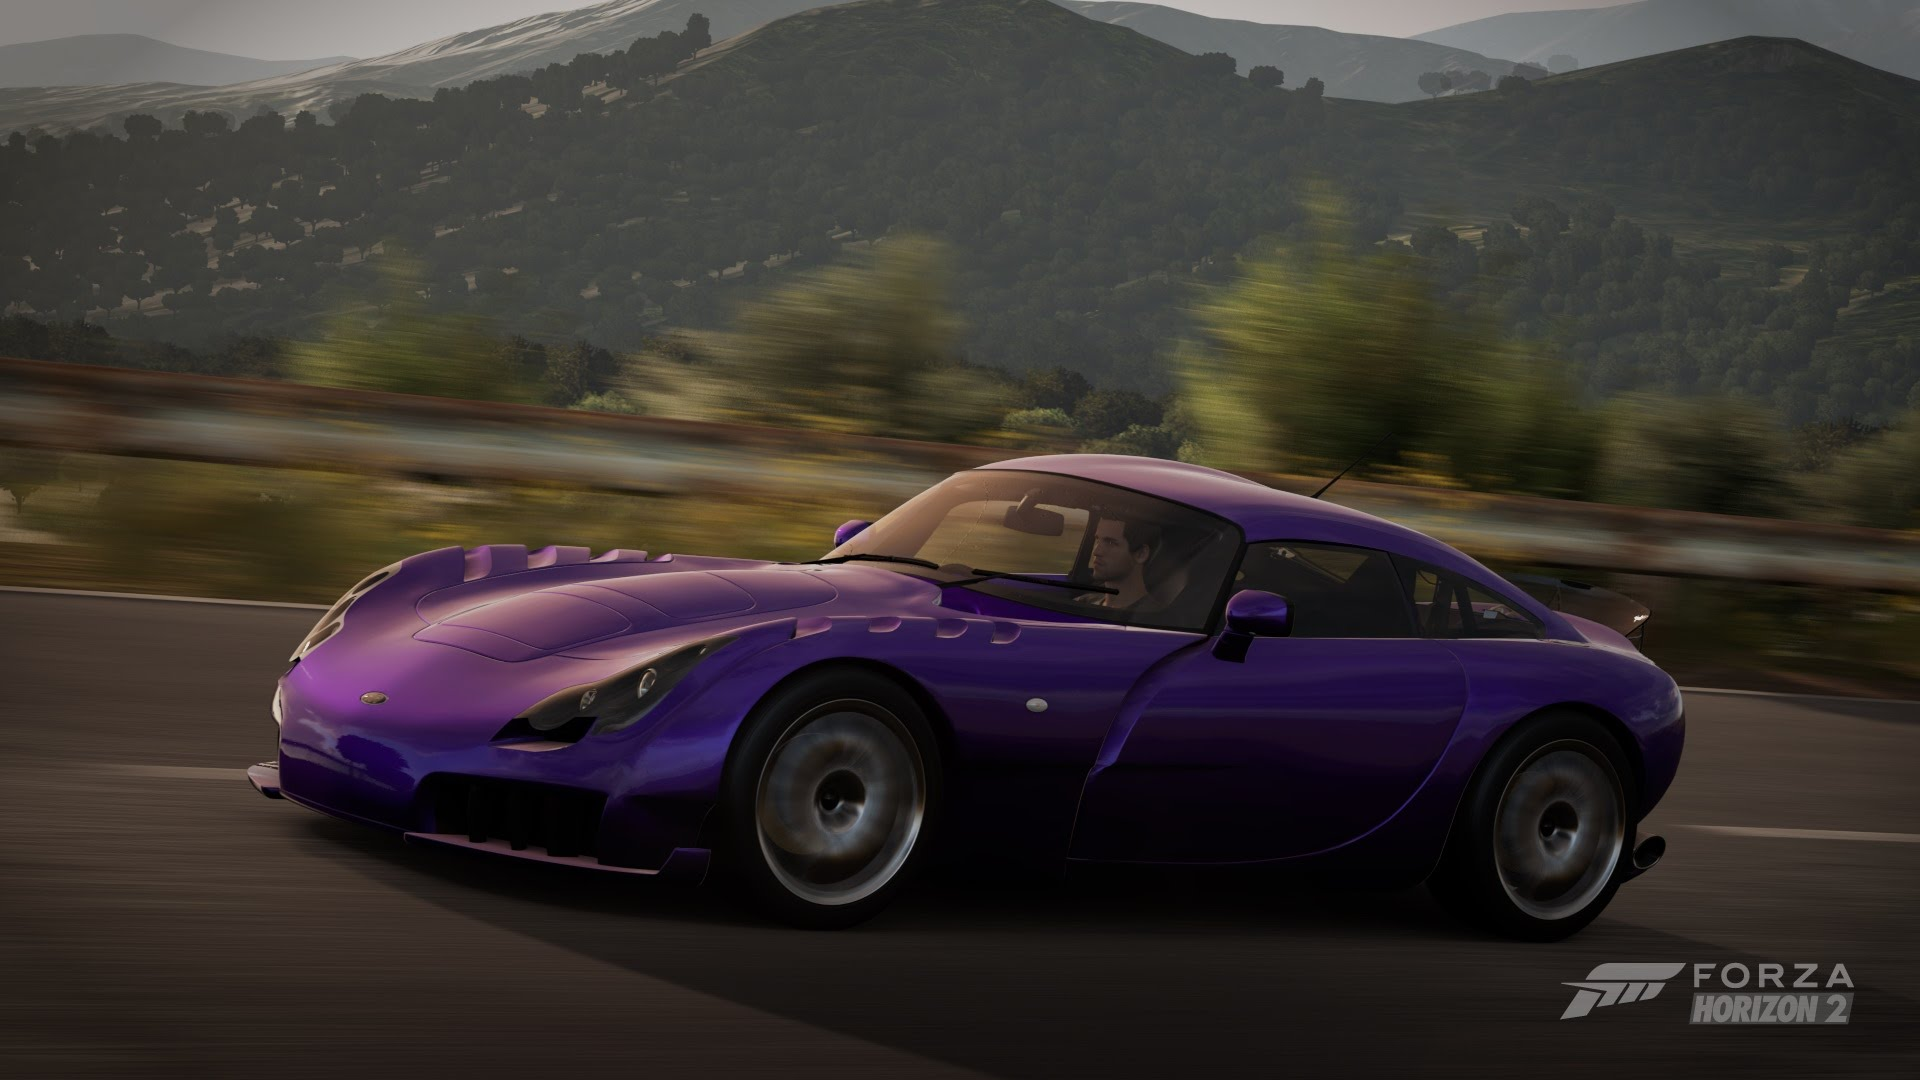 2005 TVR Speed 12 #11